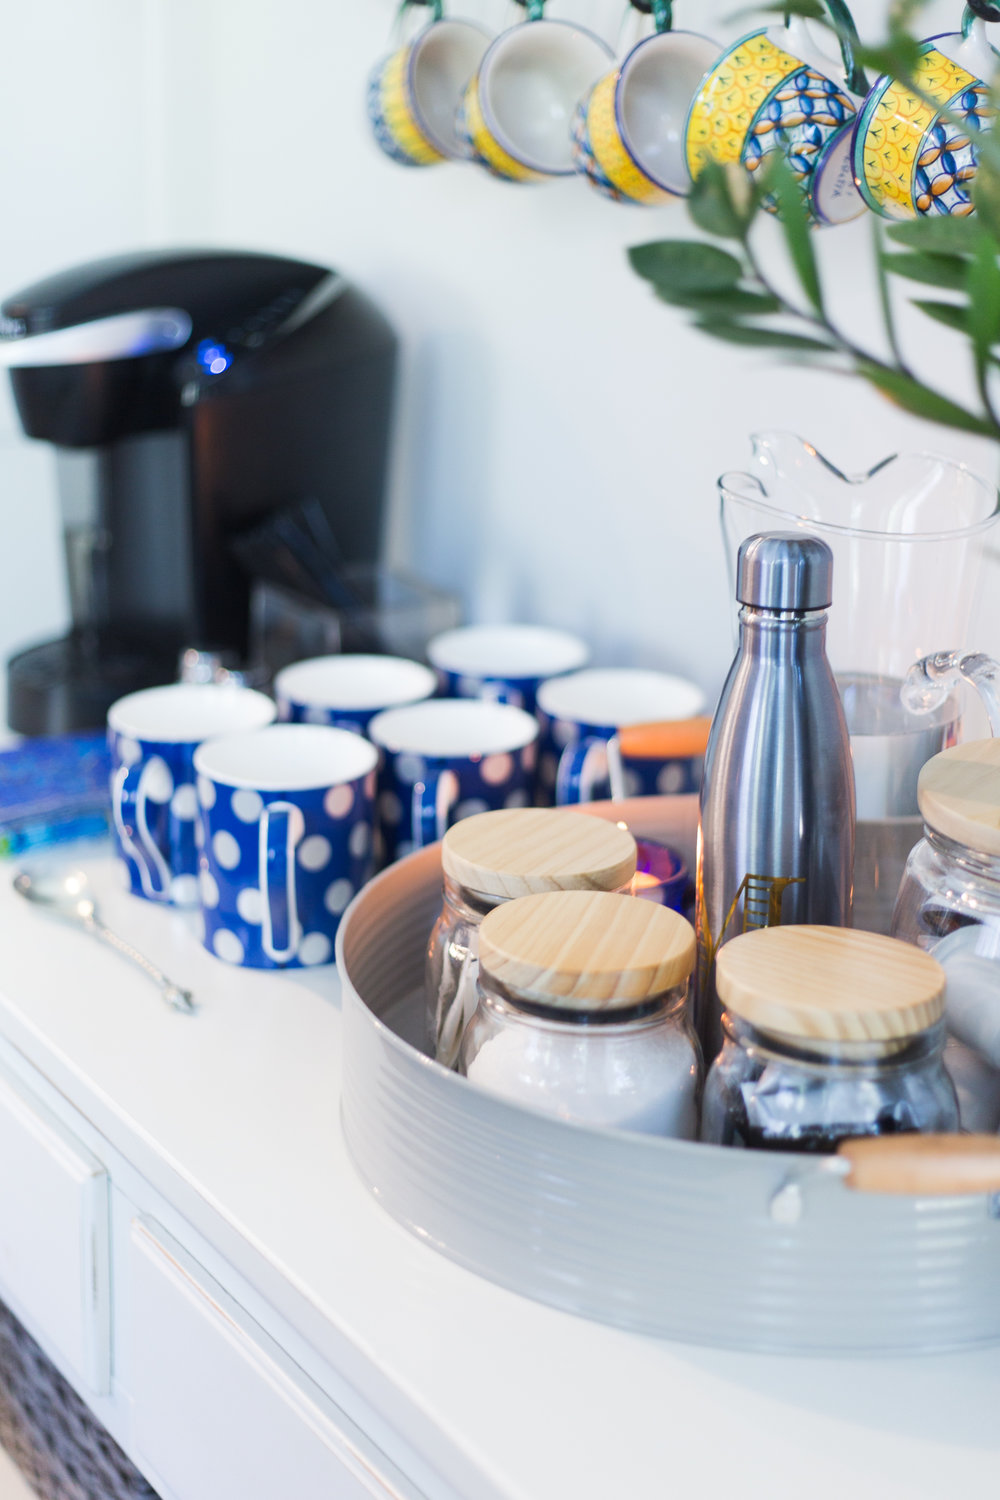 Coffee bar station with blue mugs, tray, and containers from At Home stores